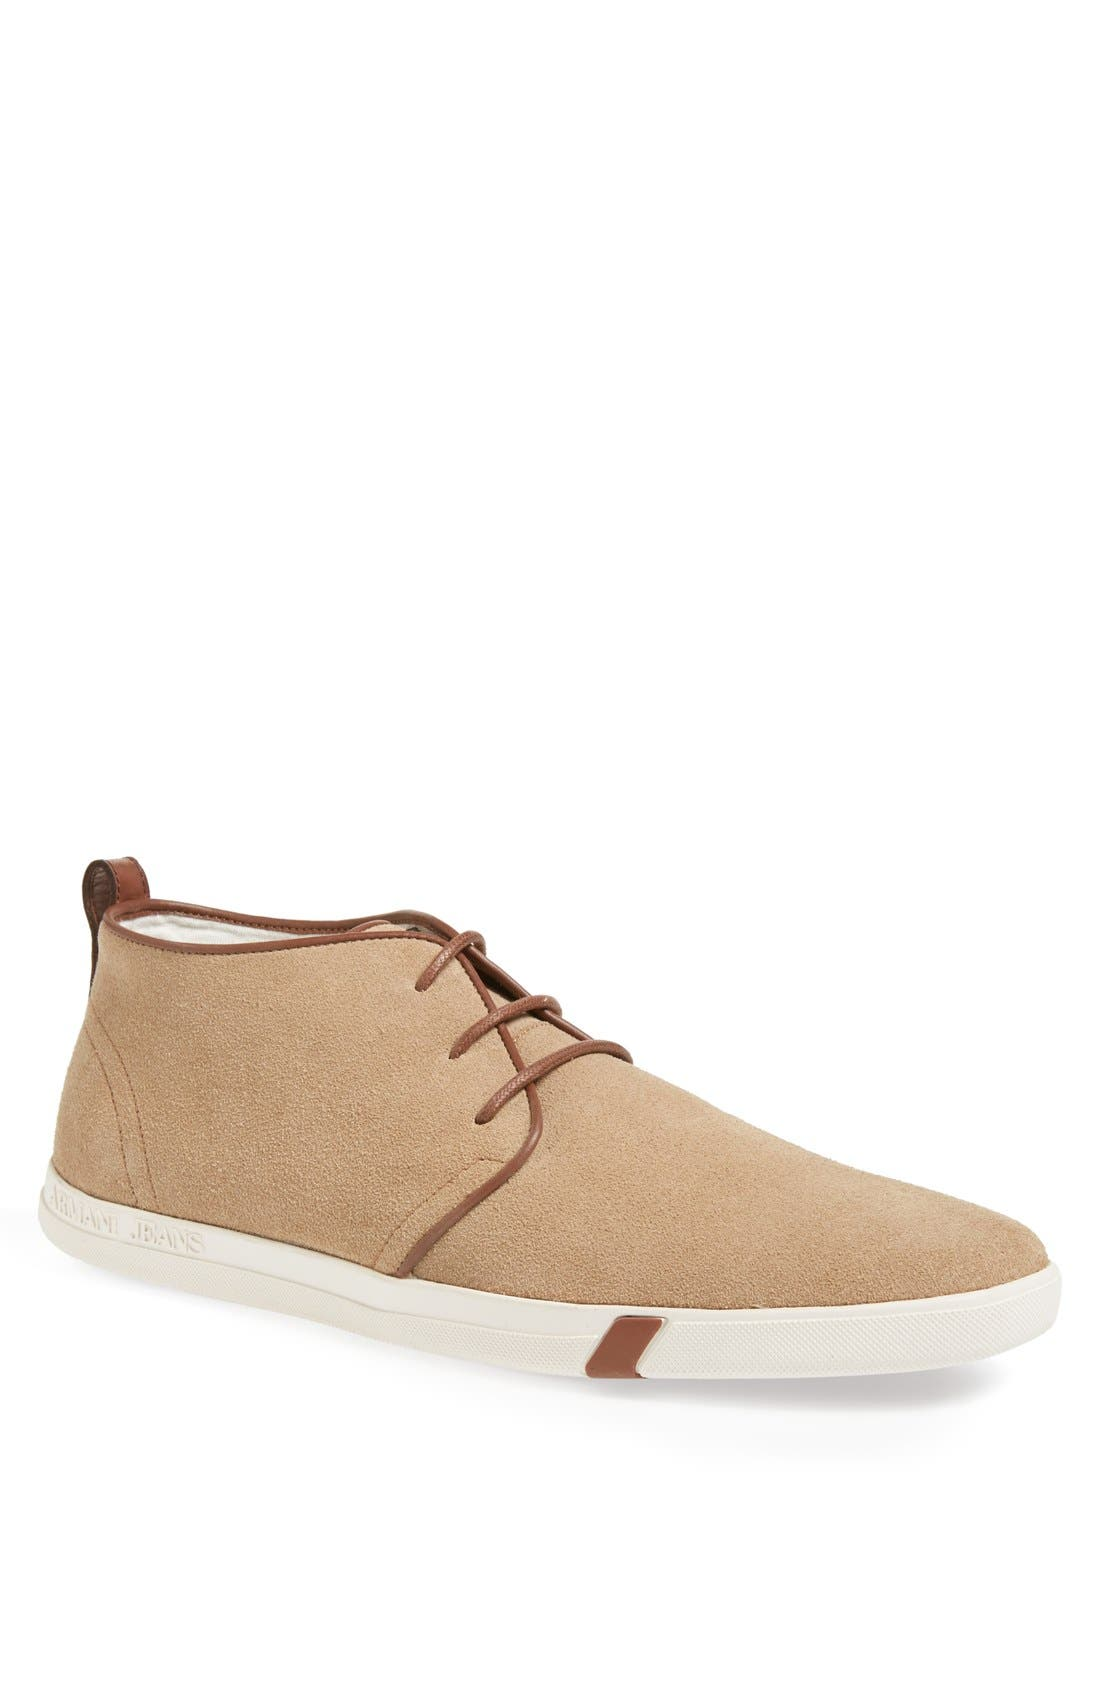 Alternate Image 1 Selected - Armani Jeans Suede Chukka Boot (Men)